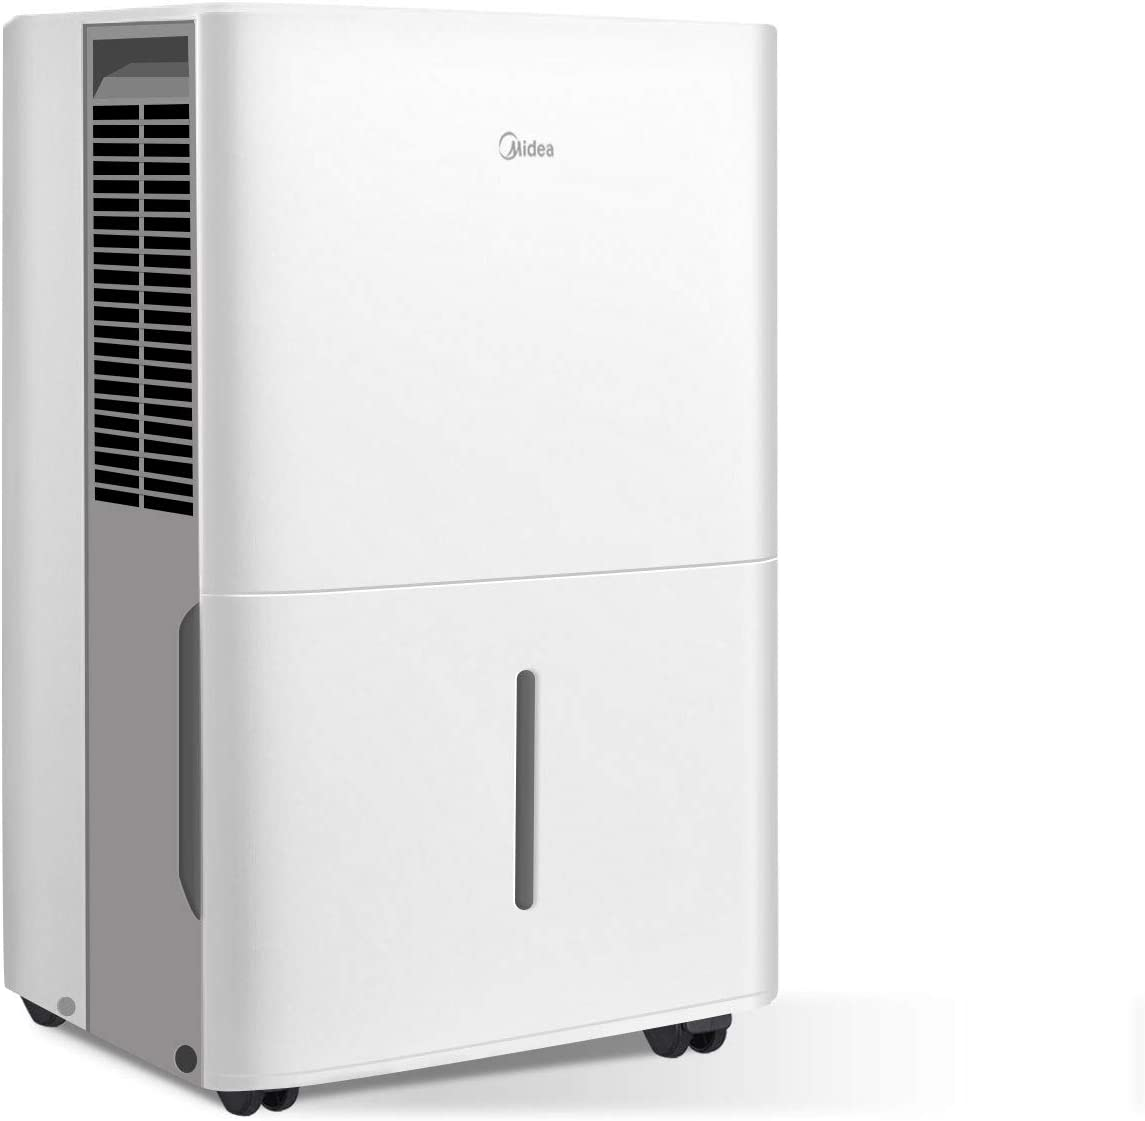 MIDEA MAD50C1ZWS Dehumidifier 70 Pint with Reusable Filter, Ideal for basements, bedroom, bathroom, with bucket of 1.6 gallon, Pint 50 Pint New DOE